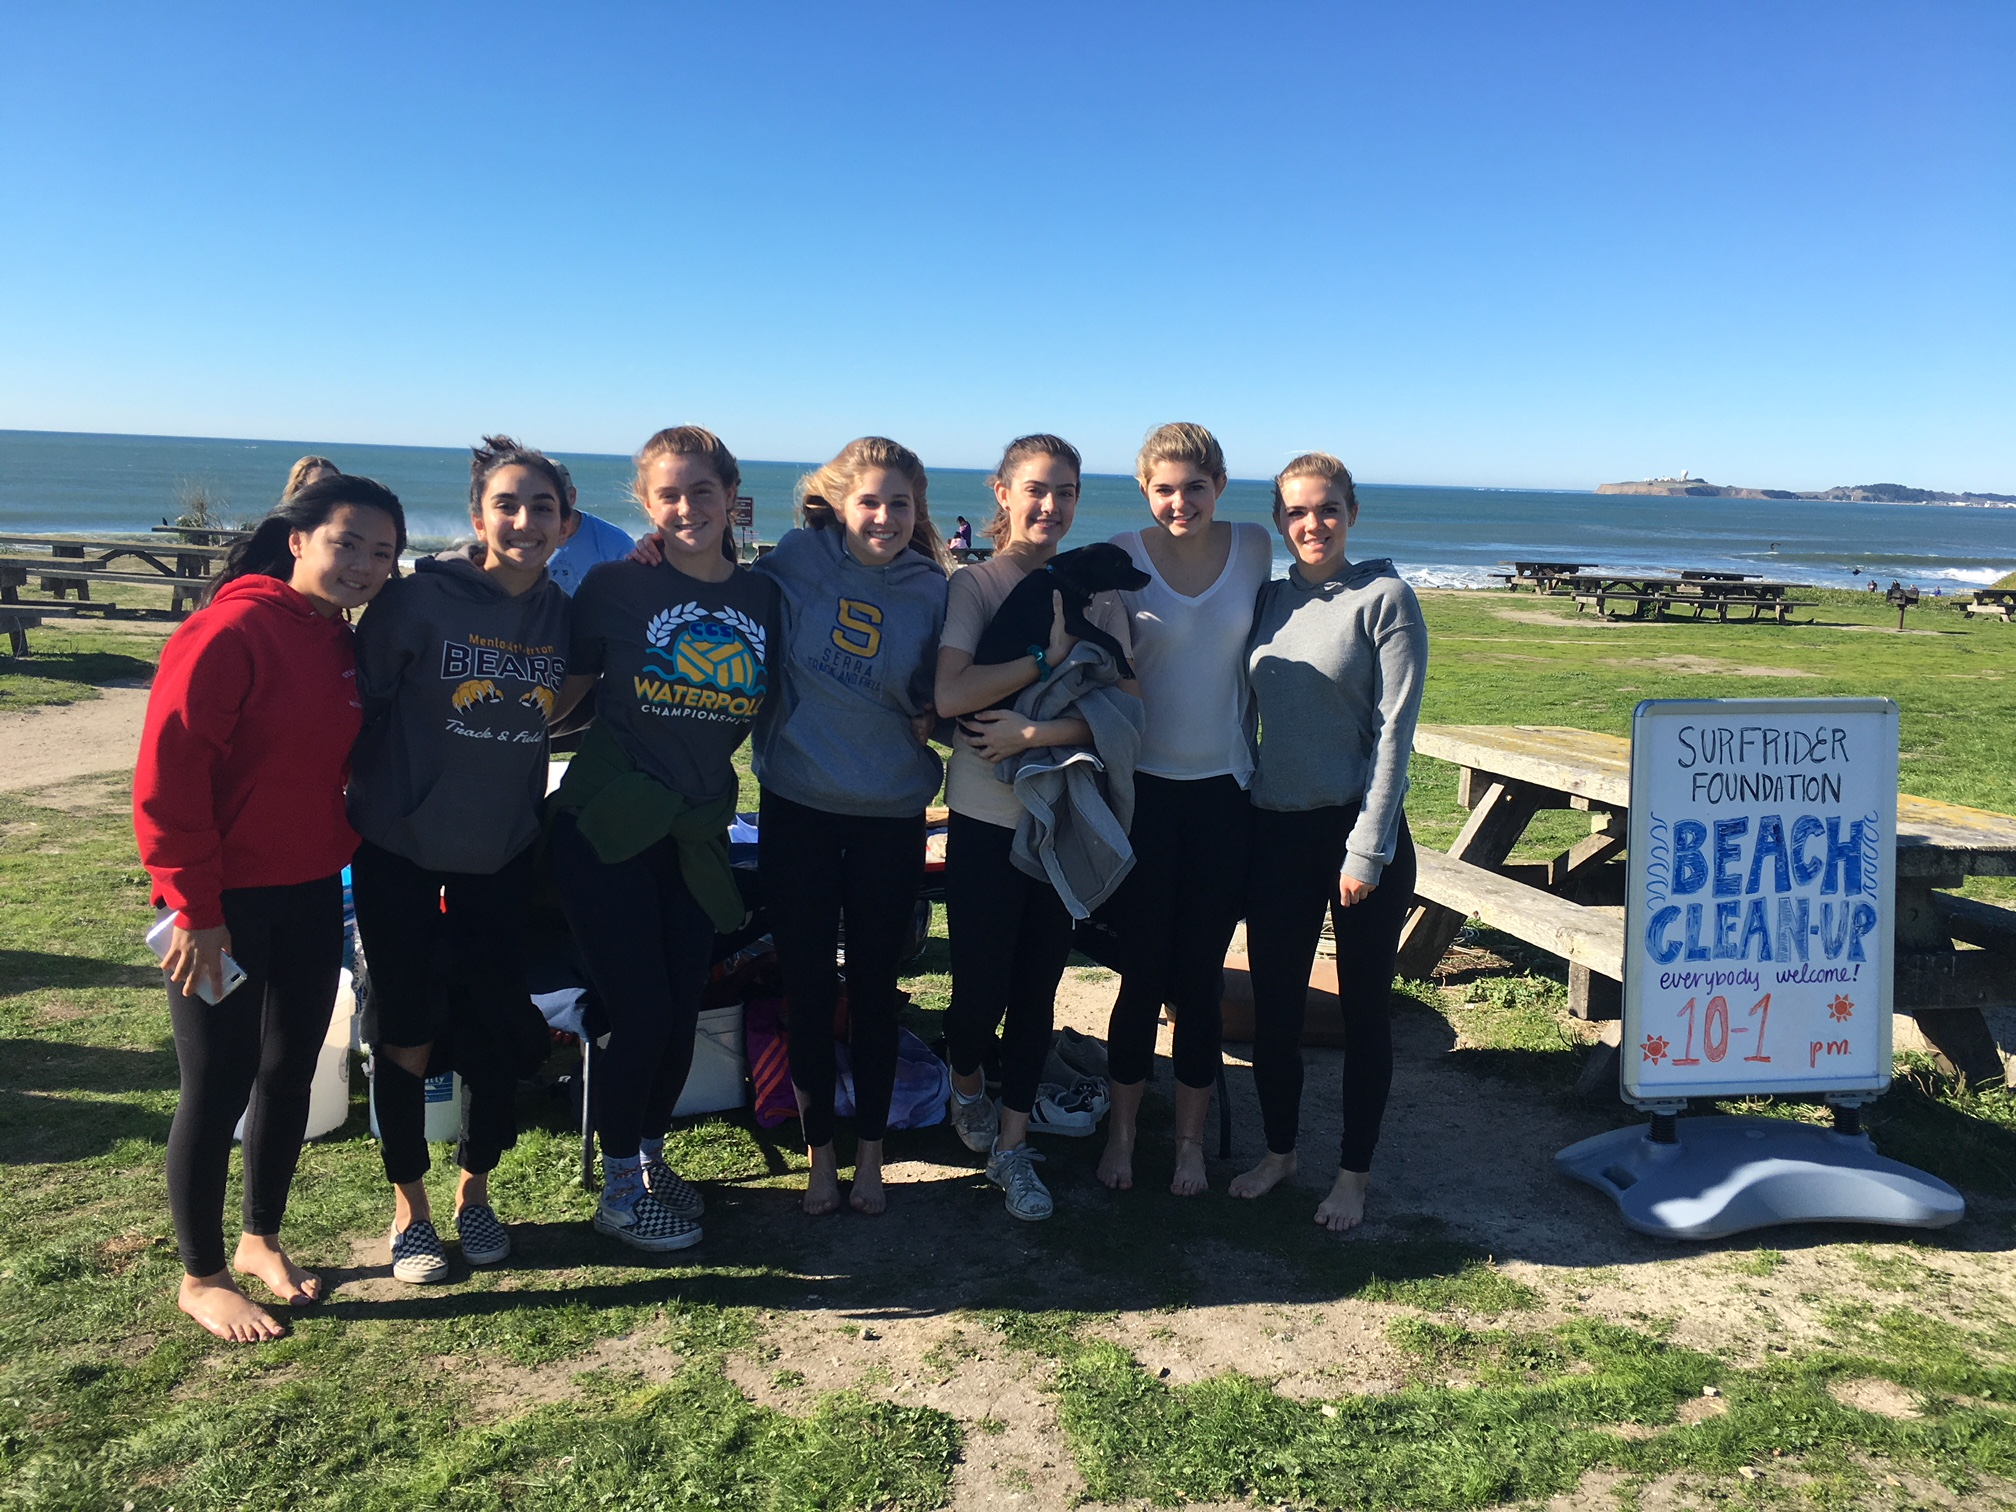 A Big Thank You to all the beach clean-up volunteers at Francis Beach on Dec. 10th!